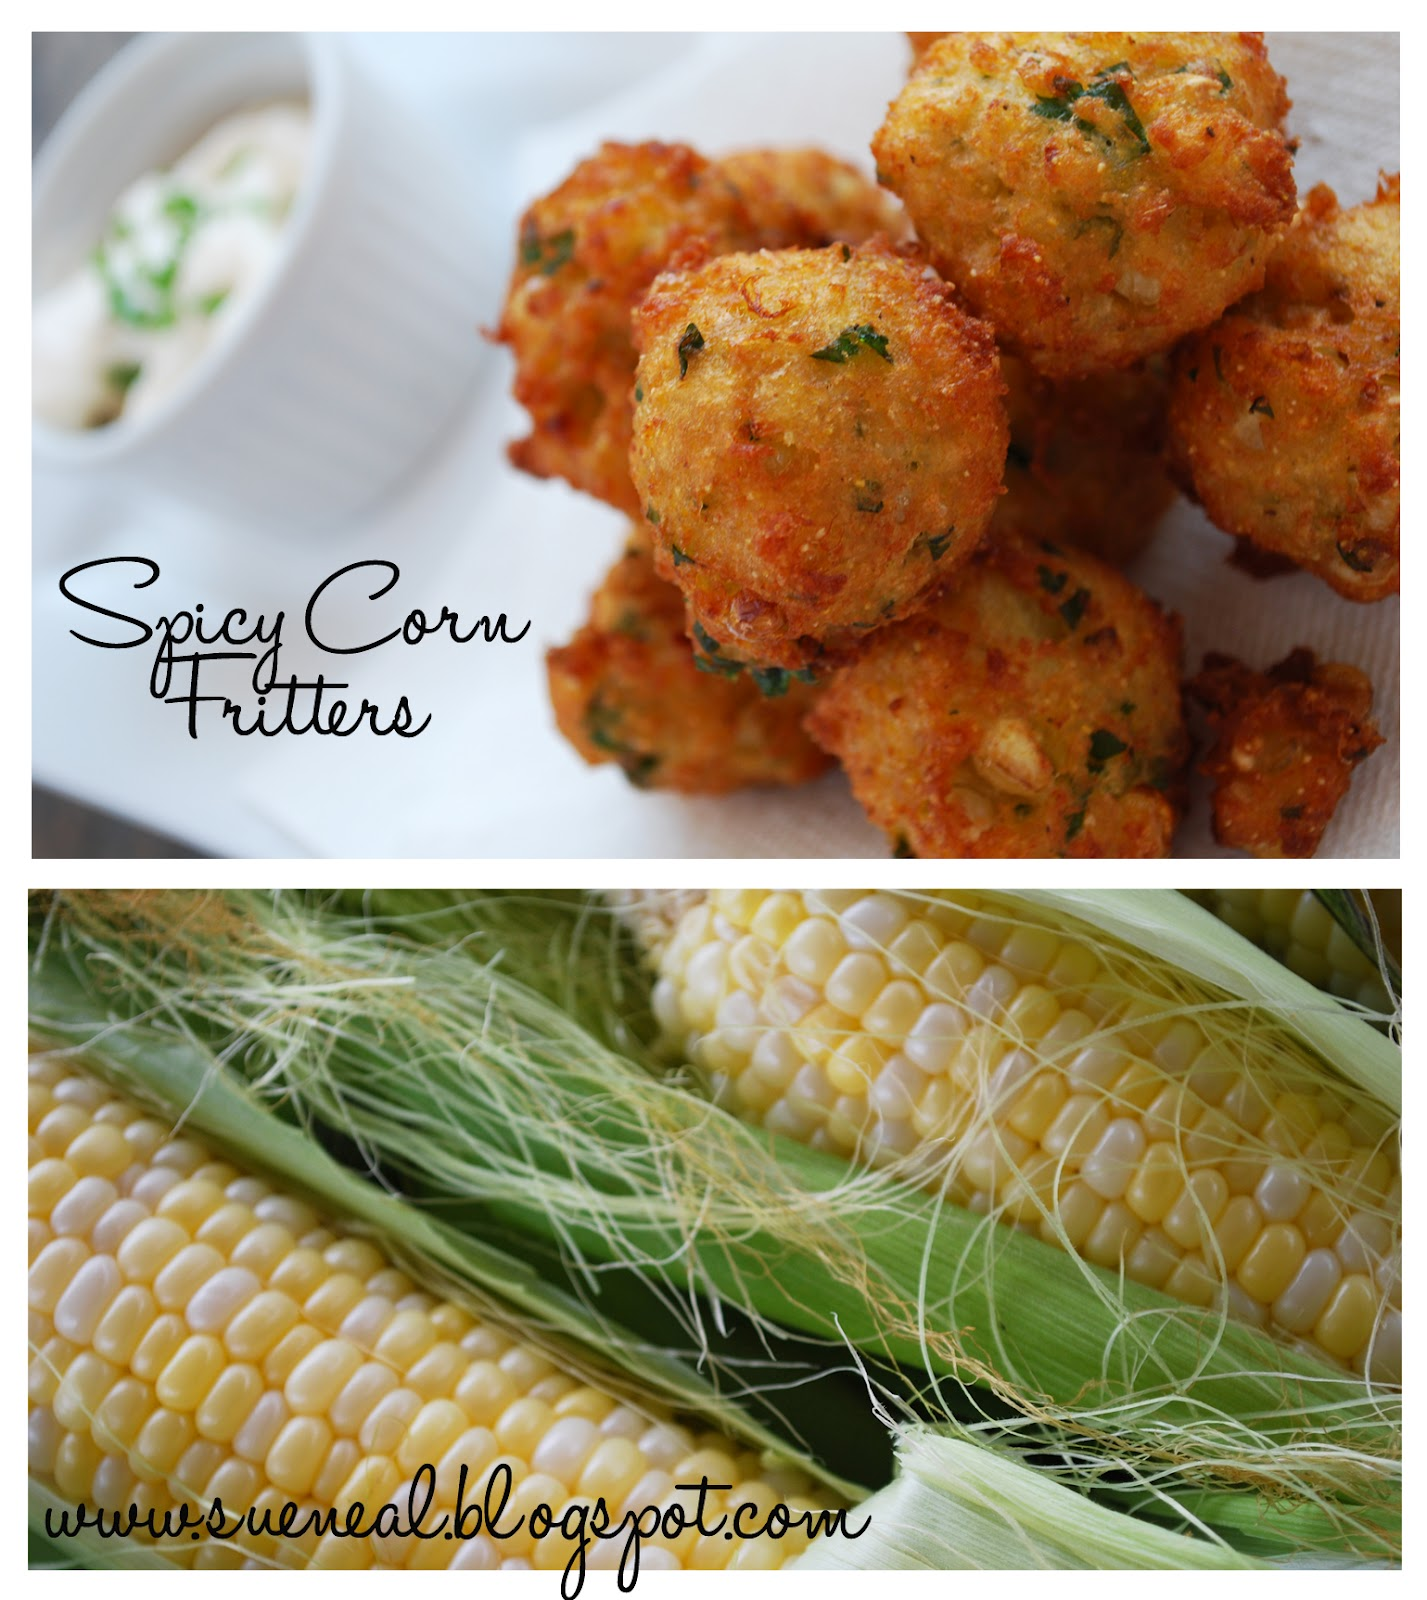 MyEyeQ: Studio 5: Spicy Corn Fritters